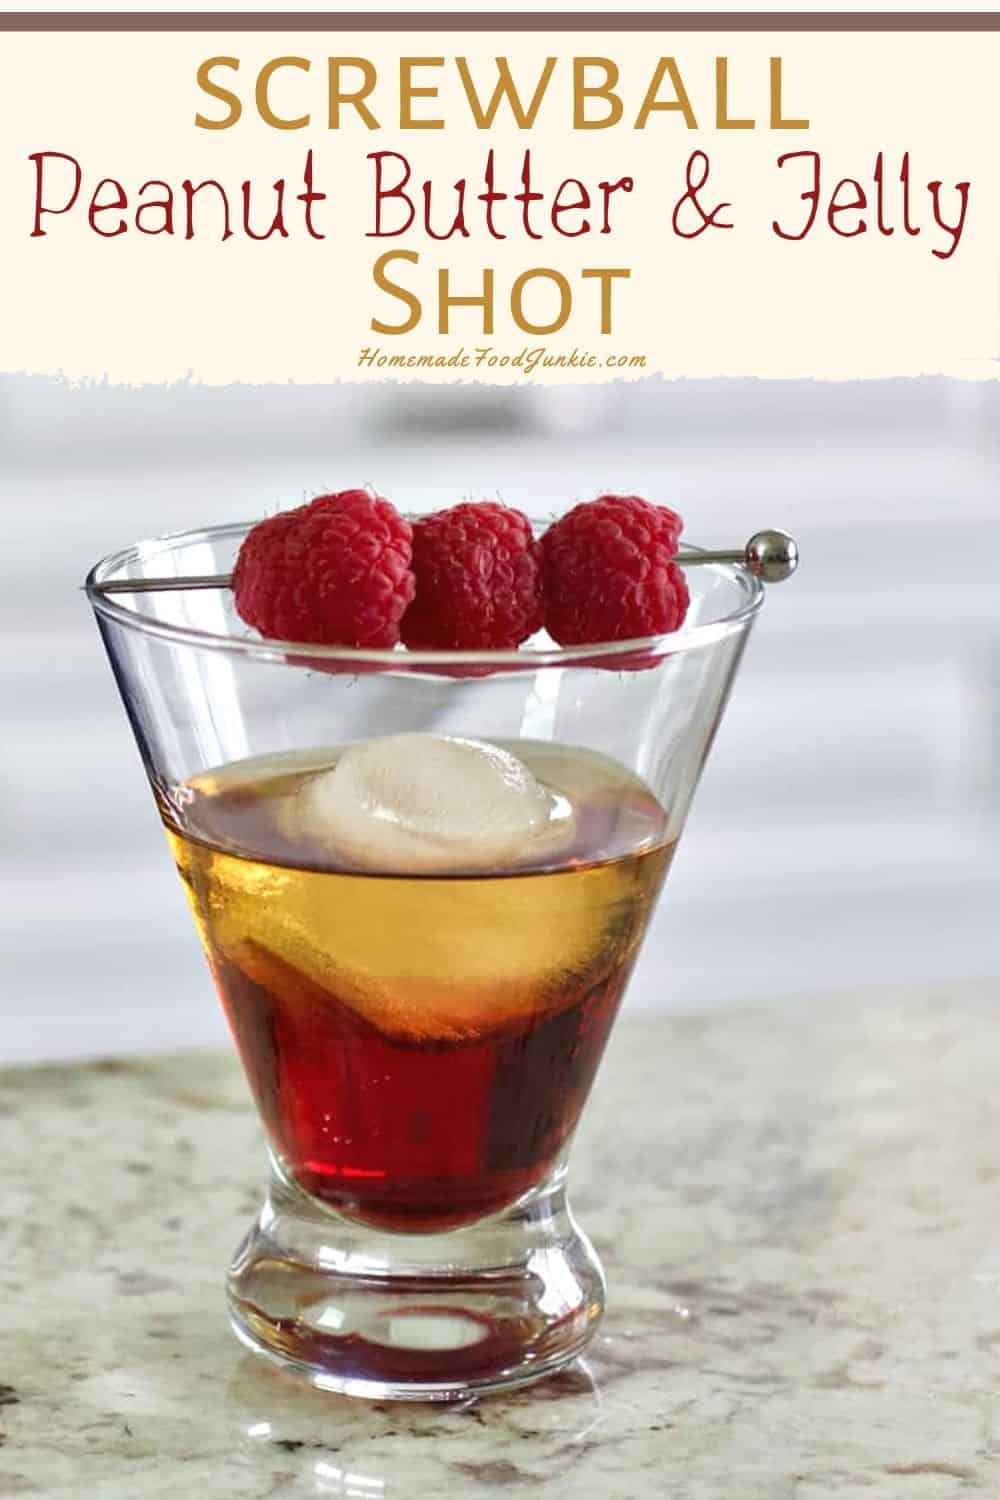 A tasty mix of Screwball peanut butter whiskey with Chambord and PB&J create this cocktail ...